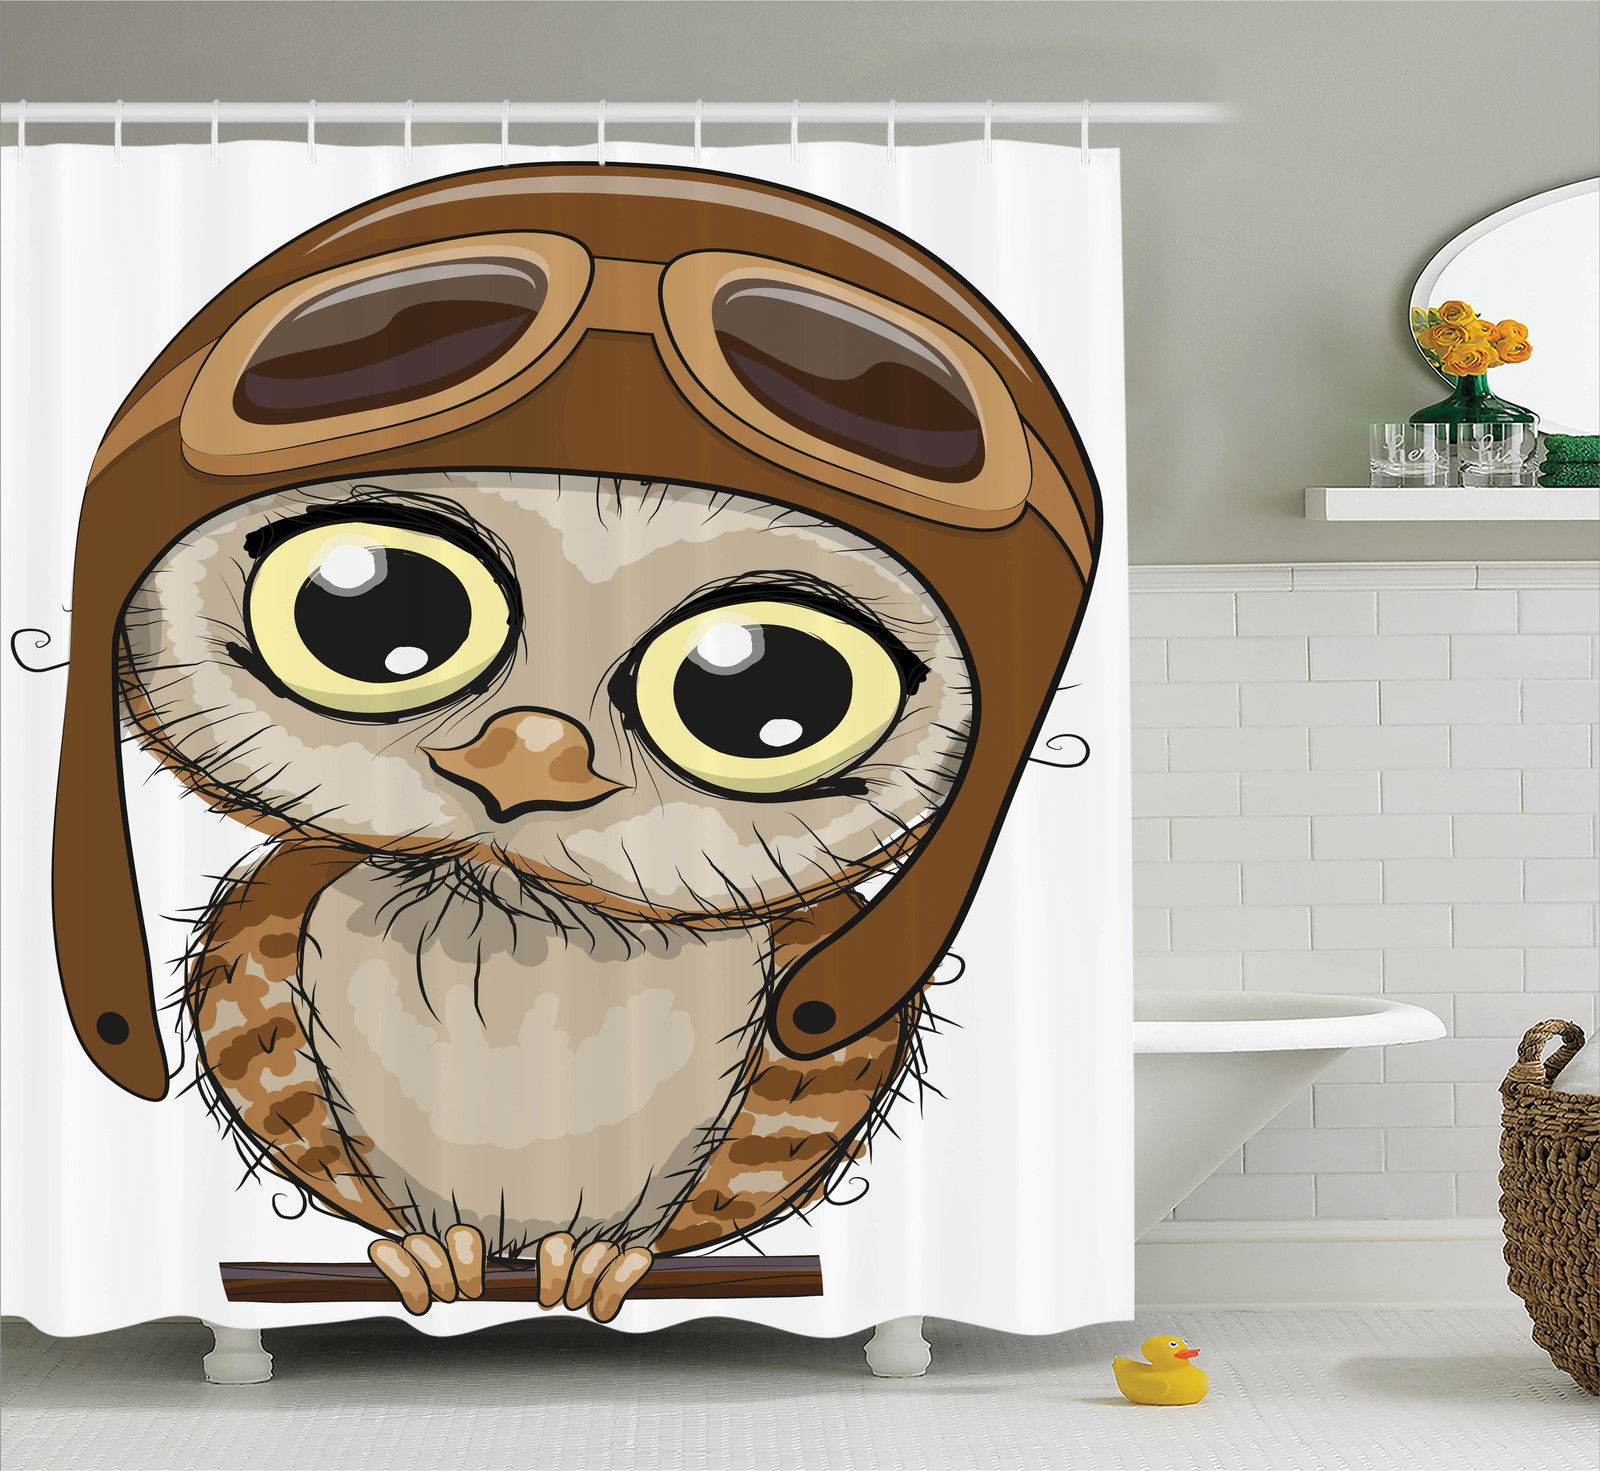 Owls Home Decor  Owl In A Pilot Hat Big Eyes Caricature Characters Wildlife Humor Comic Artistic Design, Bathroom Accessories, 69W X 84L Inches Extra Long, By Ambesonne